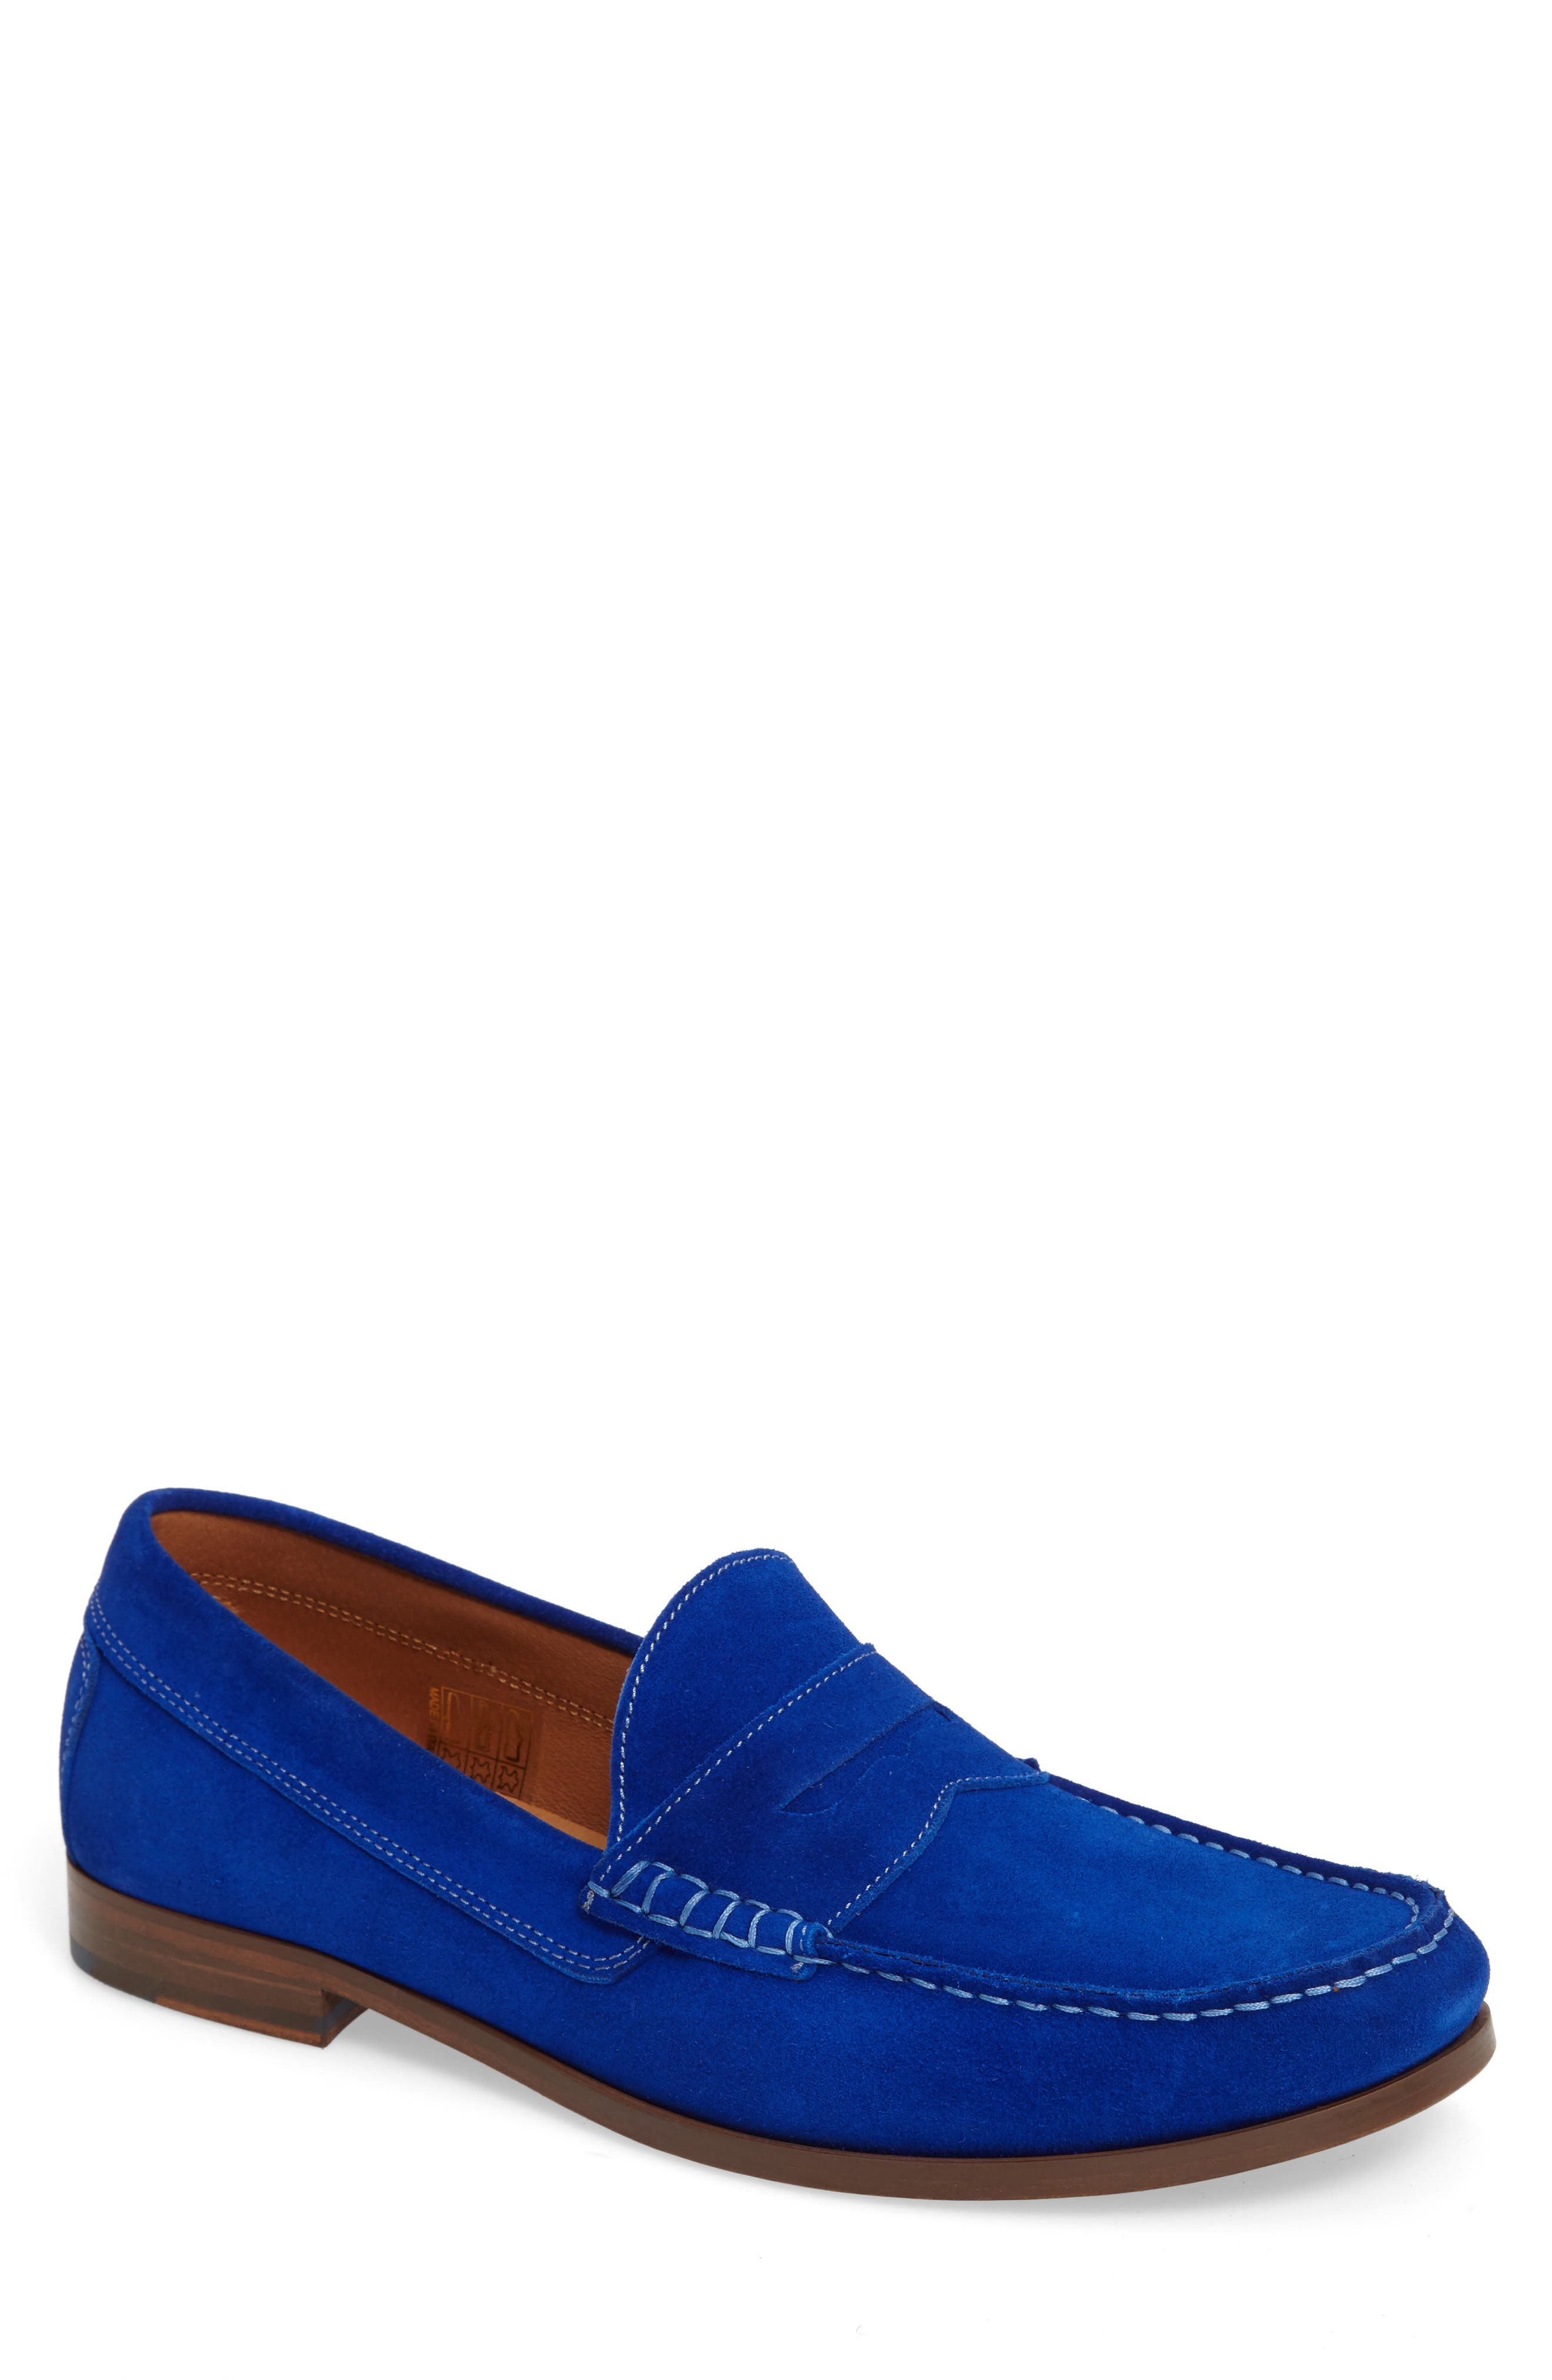 Nicola Penny Loafer,                             Main thumbnail 10, color,